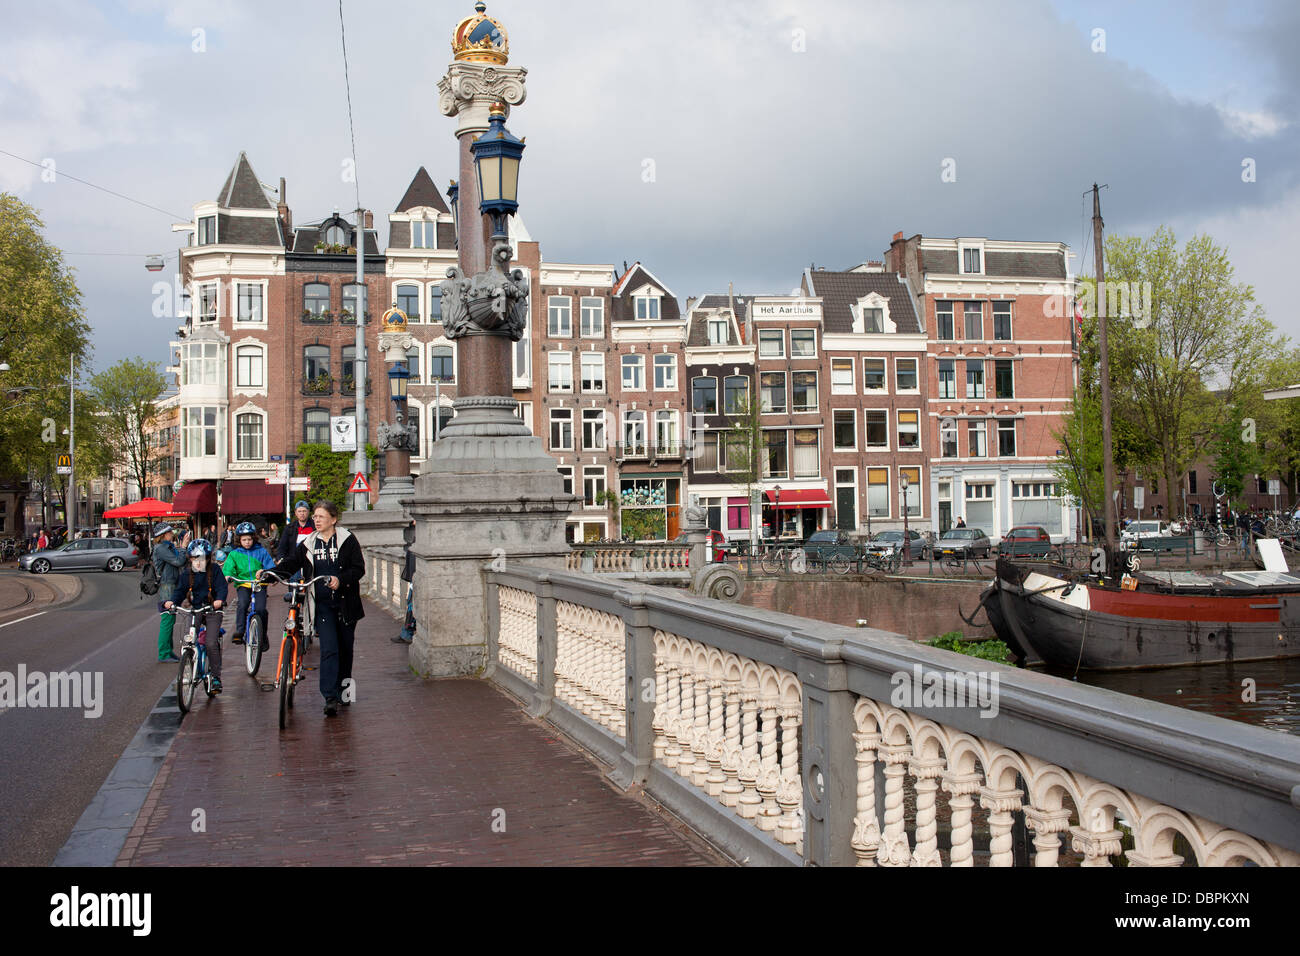 Sidewalk on Hogesluis Bridge (Hoge Sluis Brug) and historic houses, city of Amsterdam in Holland, Netherlands. - Stock Image